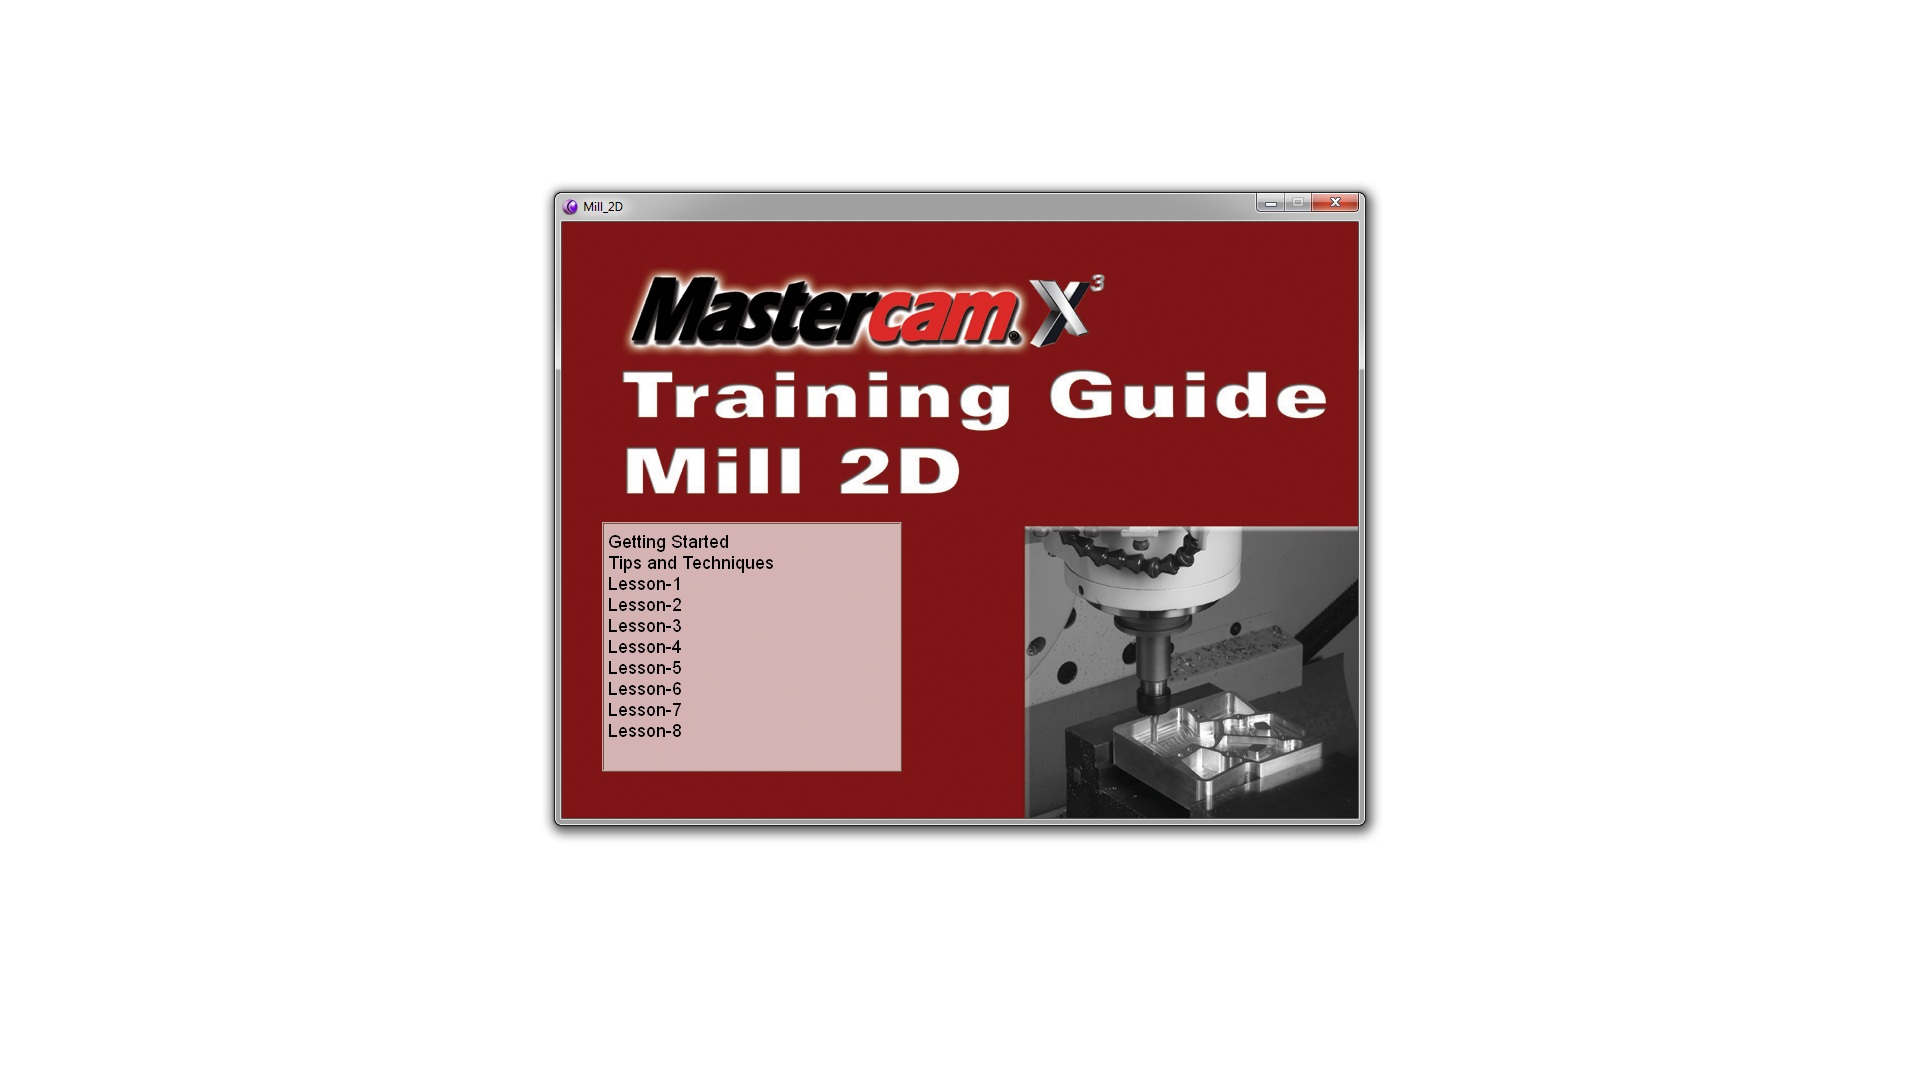 List of content of Mastercam X3 Training Guide Mill 2D videos